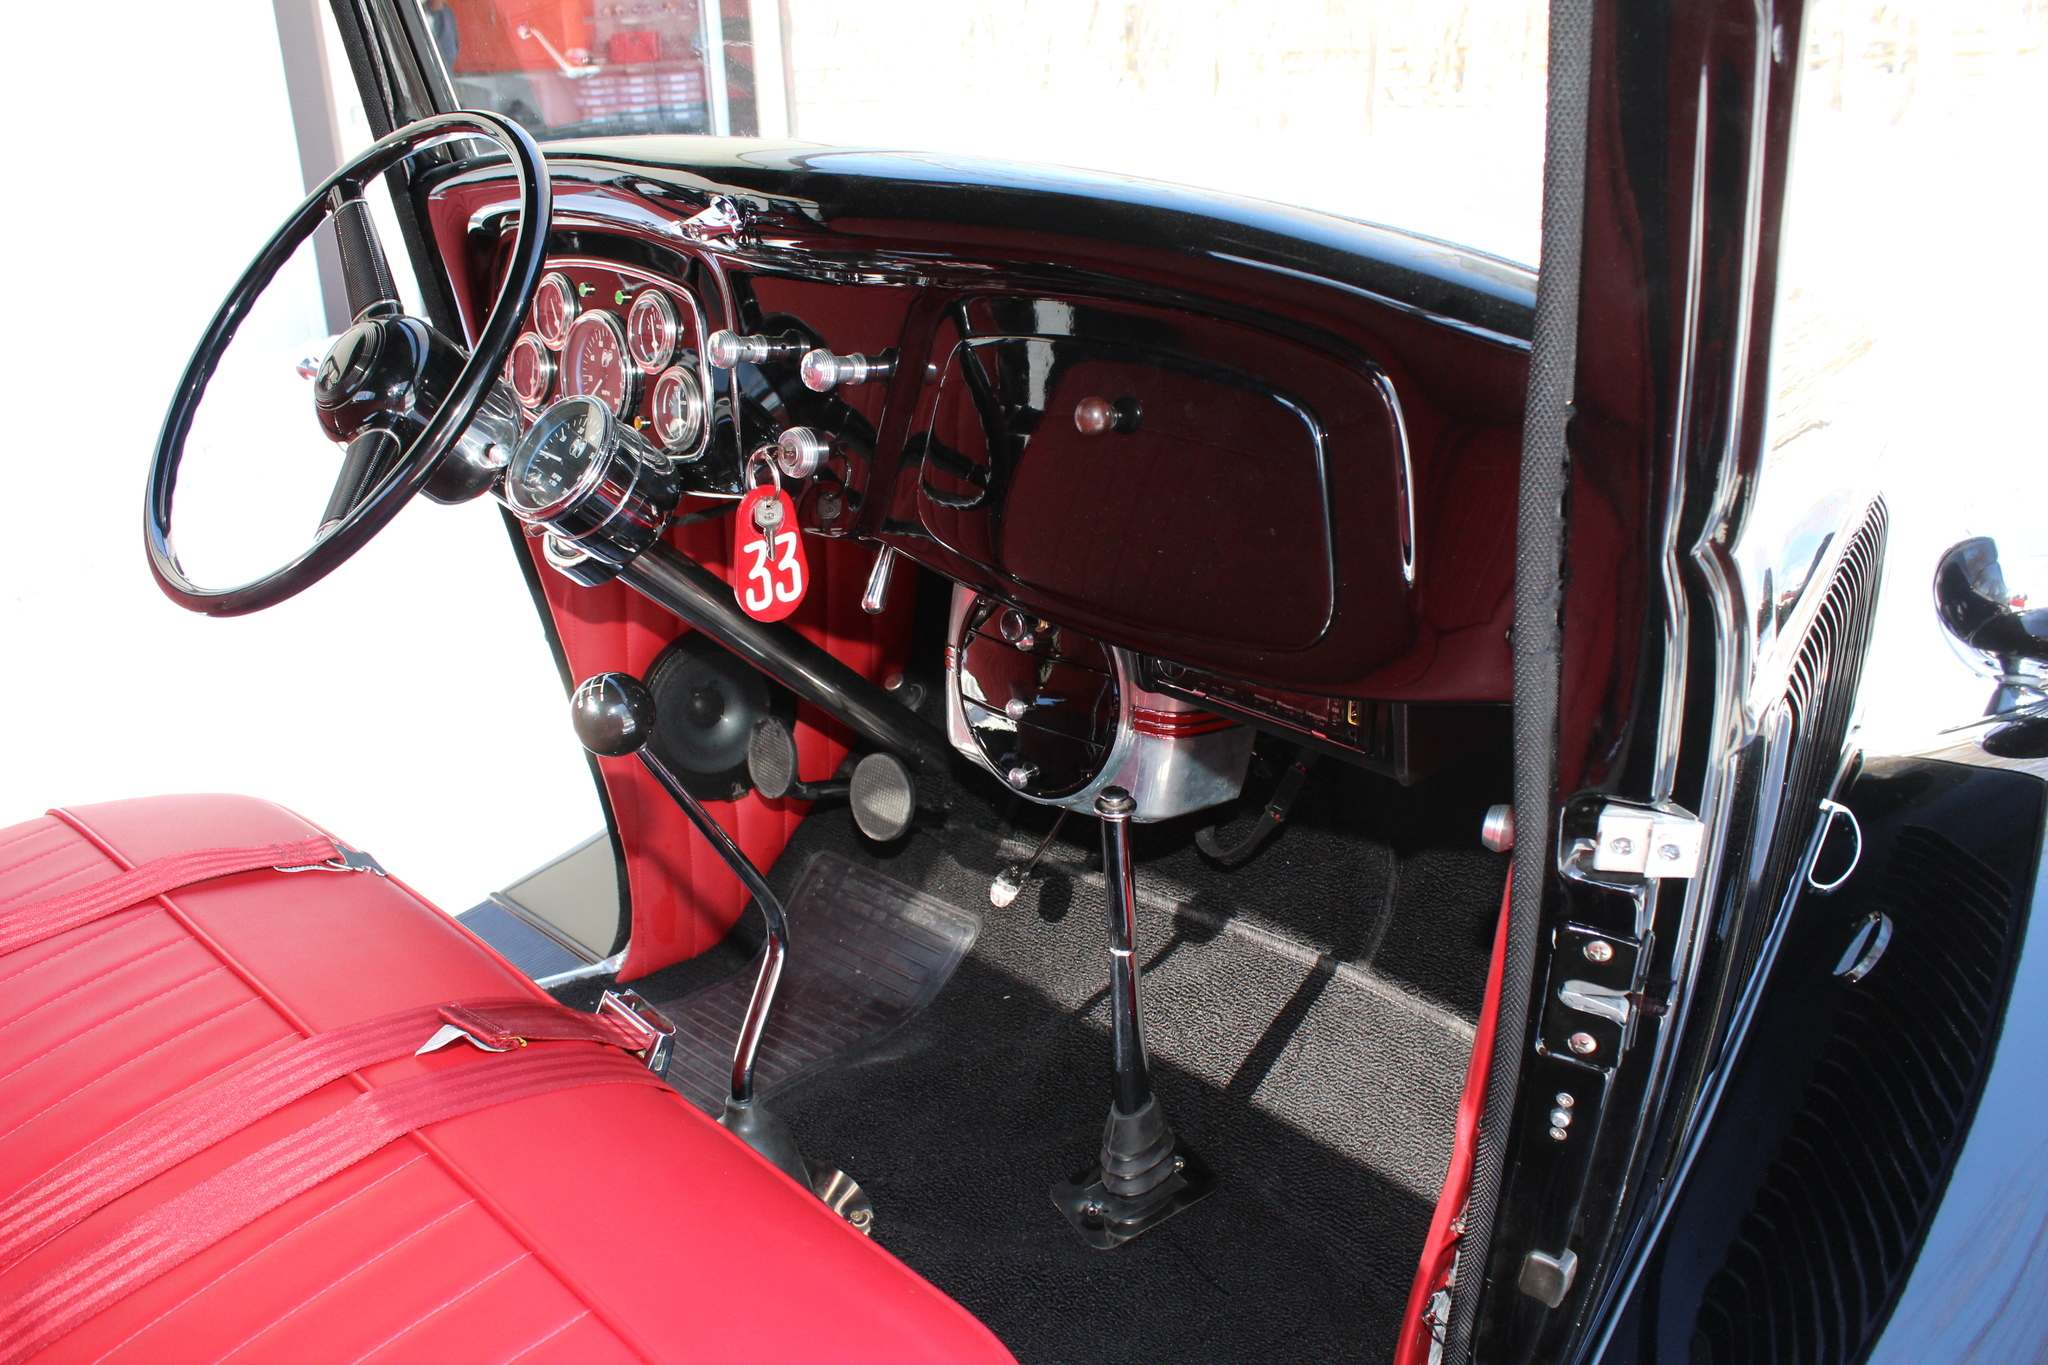 Larry D'Argis / Winnipeg Free PressThis ford model features a 1940 Ford steering wheel.